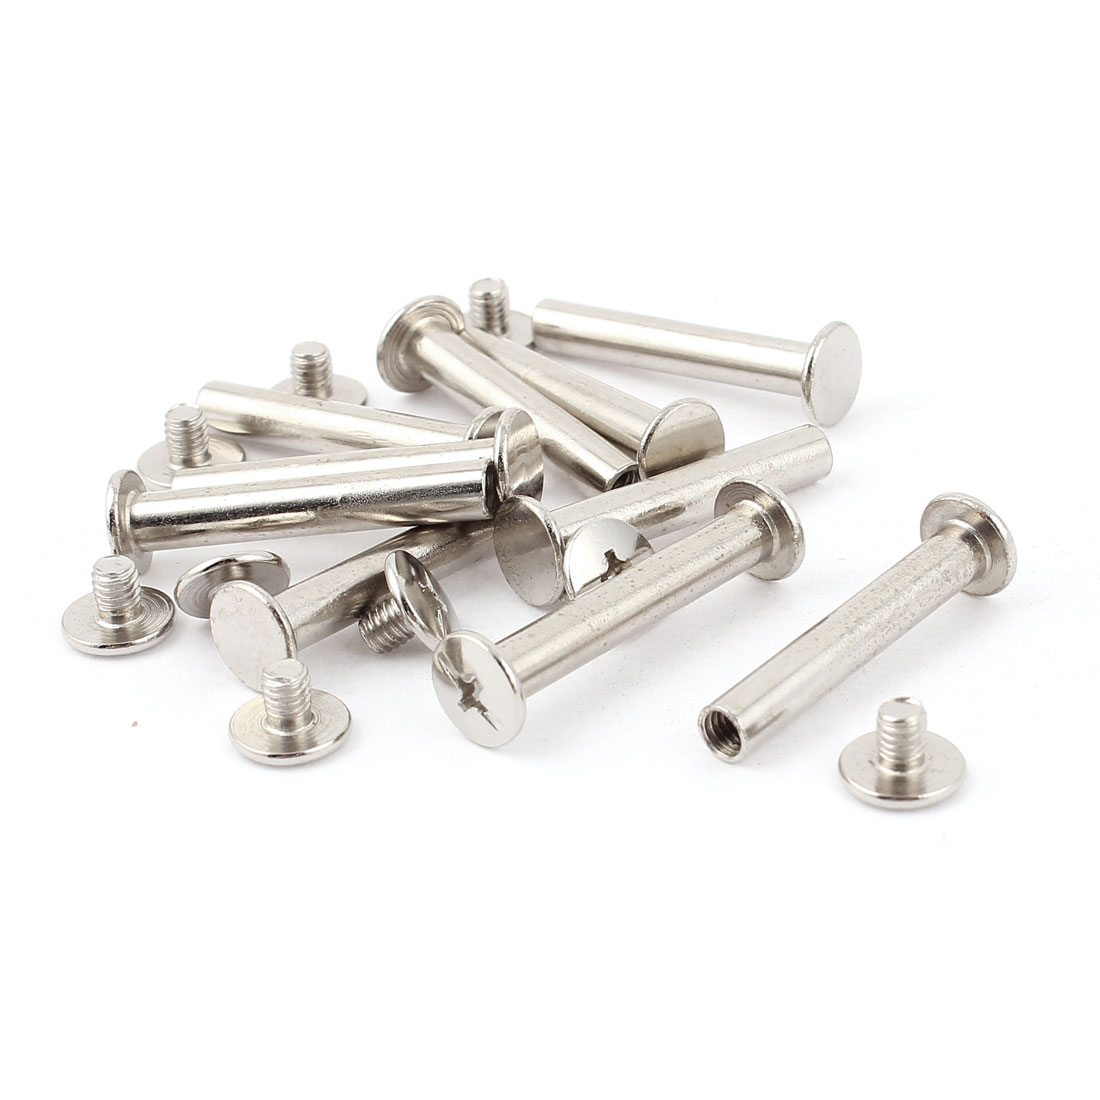 10pcs 5mmx25mm Nickel Plated Binding Chicago Screw Post for Album Scrapbook